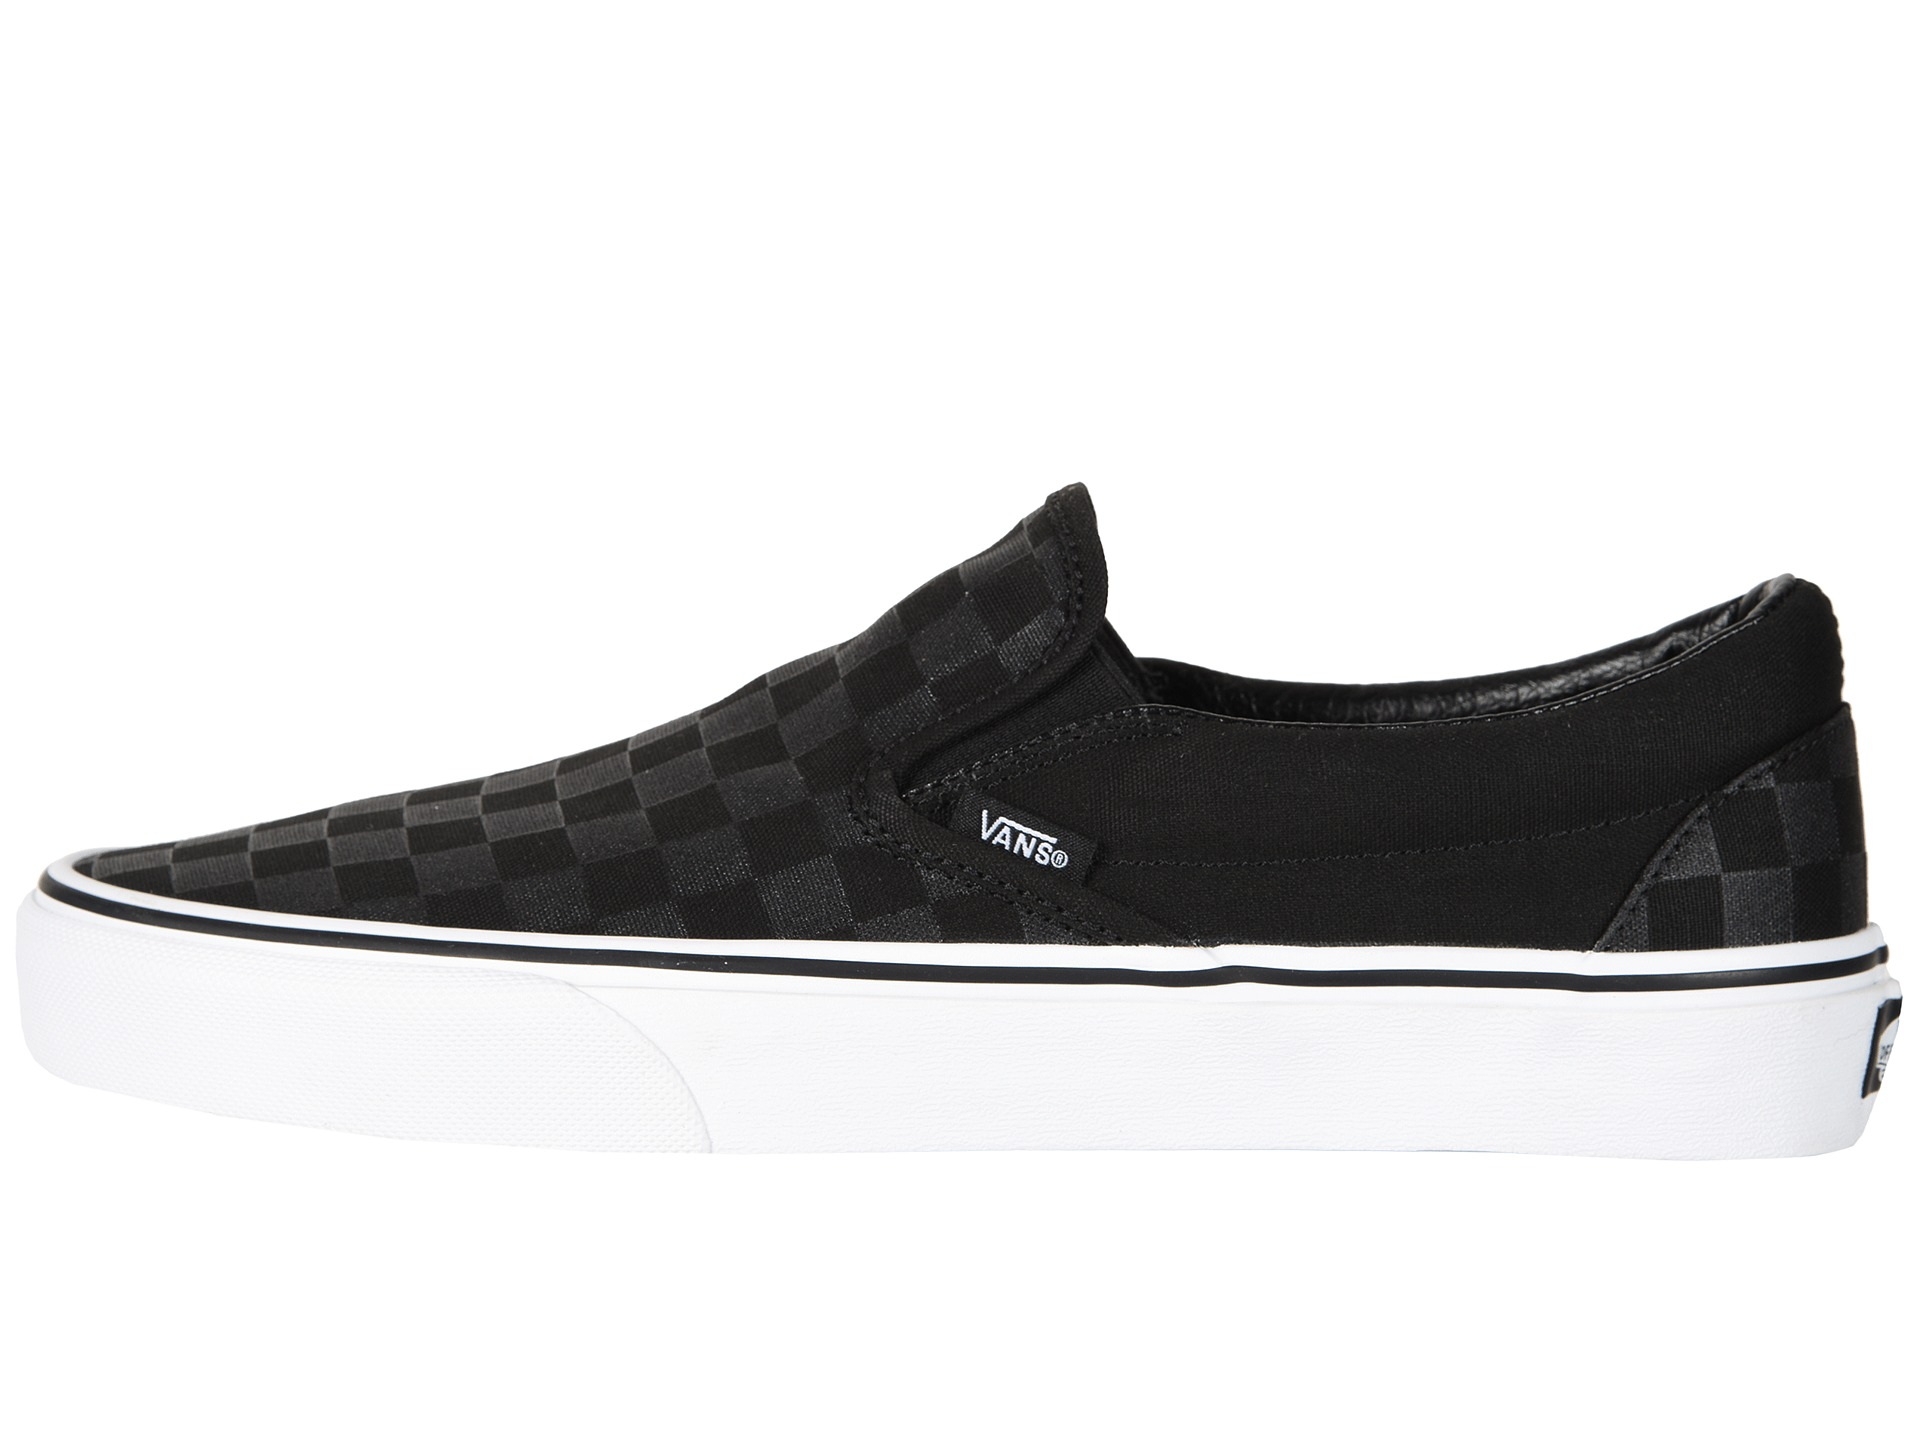 Vans Classic Perforated Leather Slip On Shoes Canada